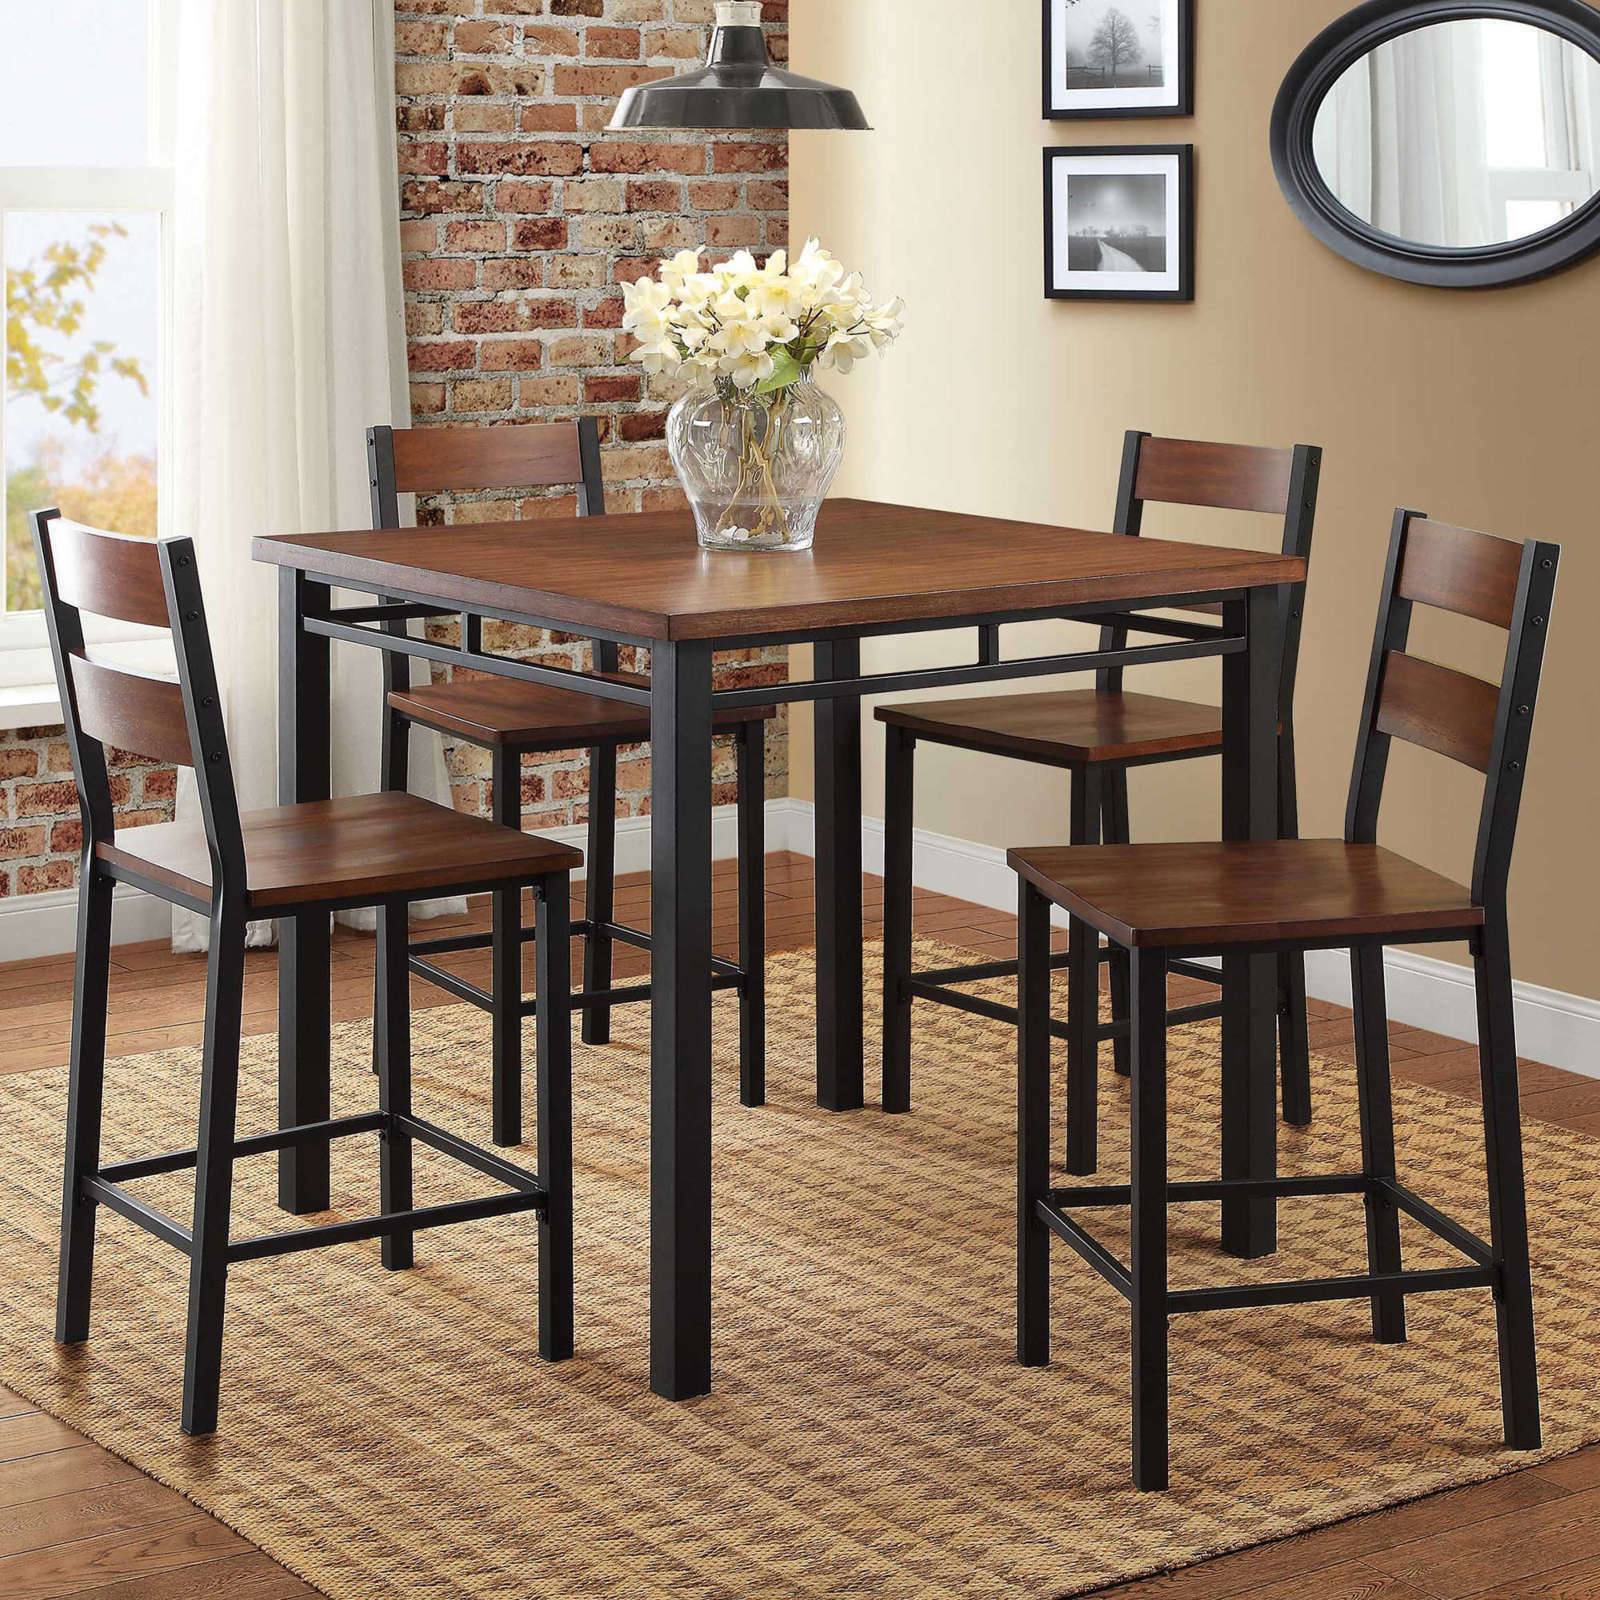 Recent Details About 5 Piece Counter Height Dining Set 4 Chairs Table Kitchen  Breakfast Nook Brown Within 5 Piece Breakfast Nook Dining Sets (View 16 of 20)